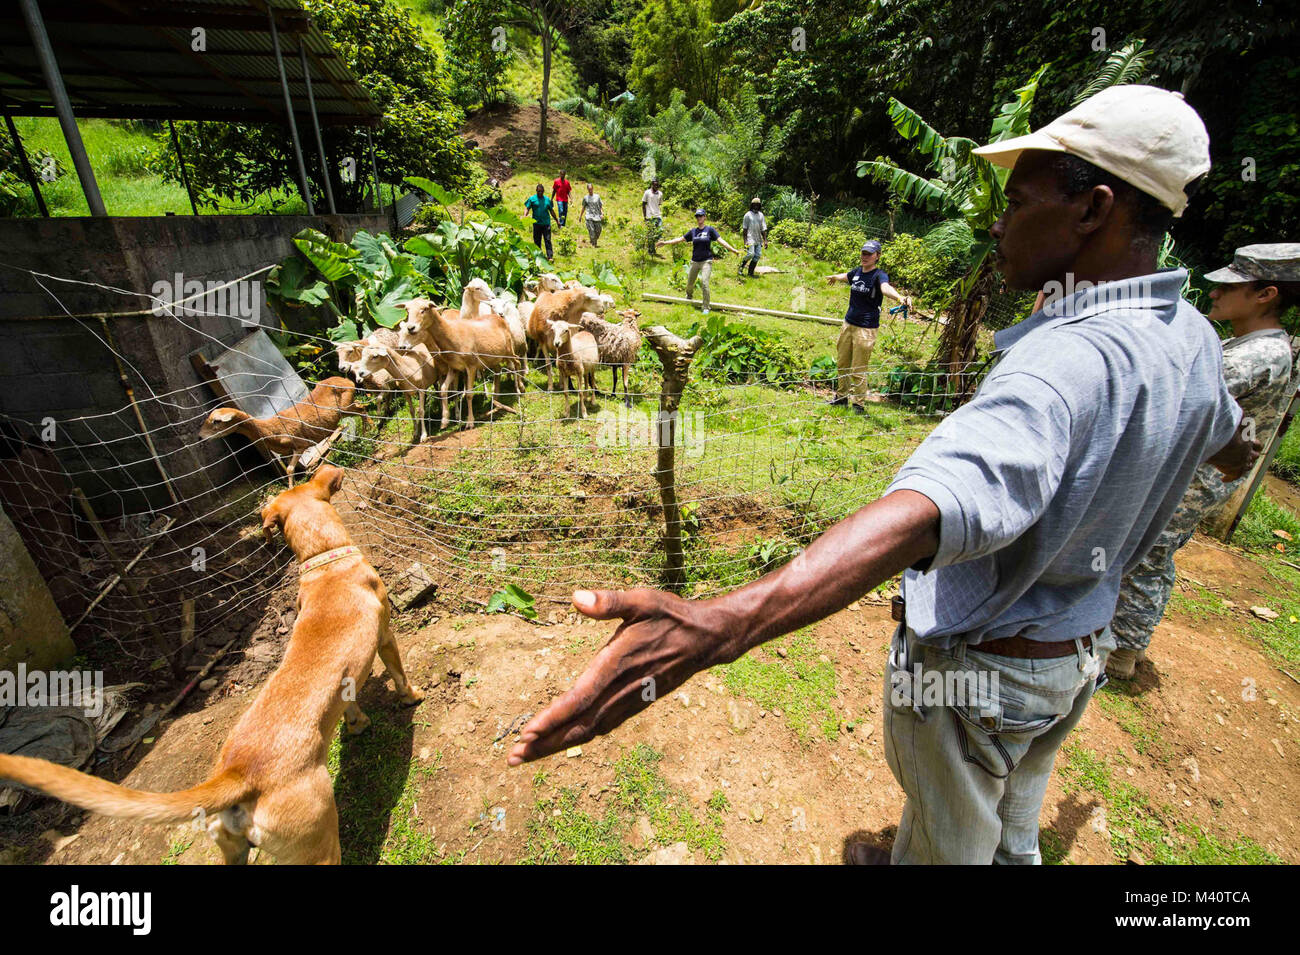 150805-N-NK134-155 PORTSMOUTH, Dominica (Aug. 5, 2015) - Army veterinarian technicians and volunteers with the non - Stock Image